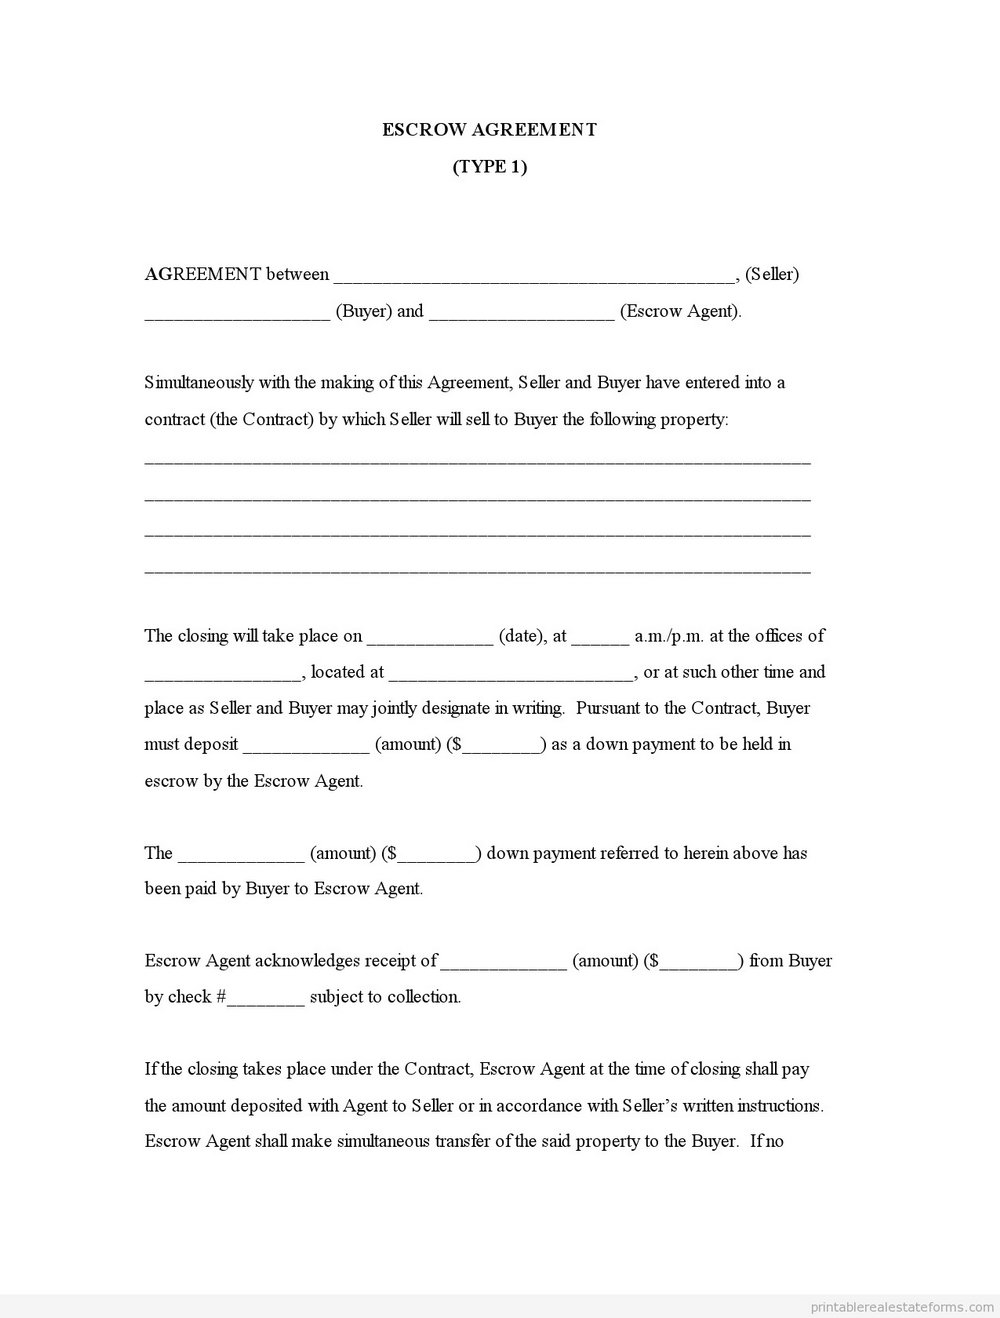 Escrow Agreement Form